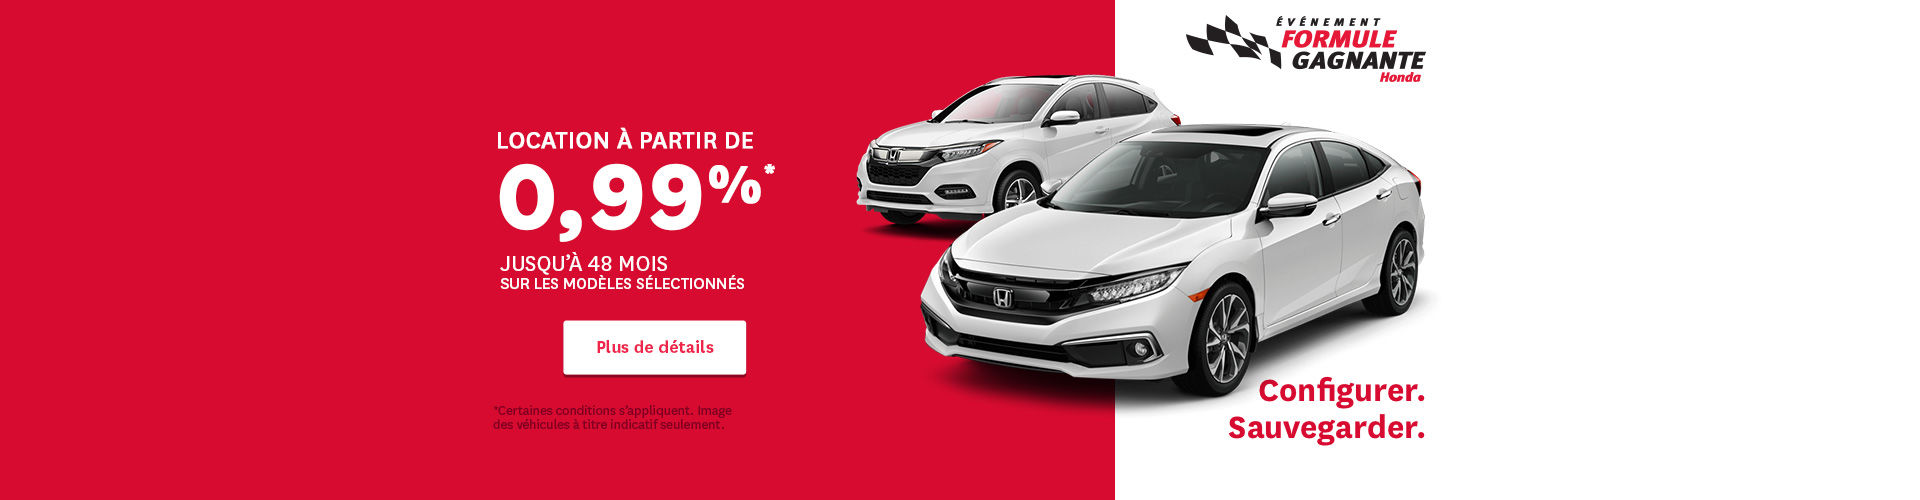 Honda event - header